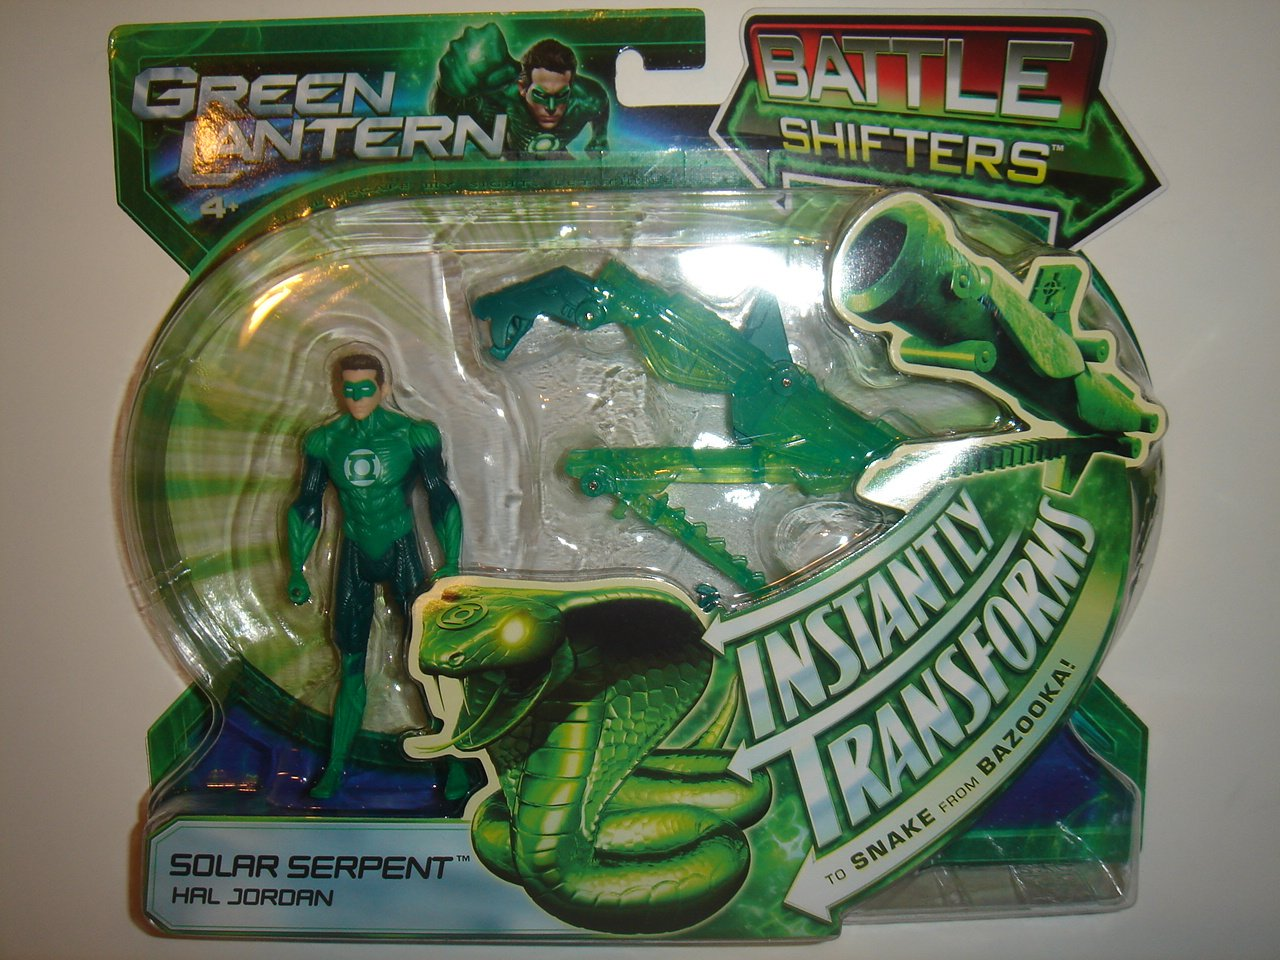 Green Lantern 9.5cm Battle Shifters Solar Serpent Hal Jordan